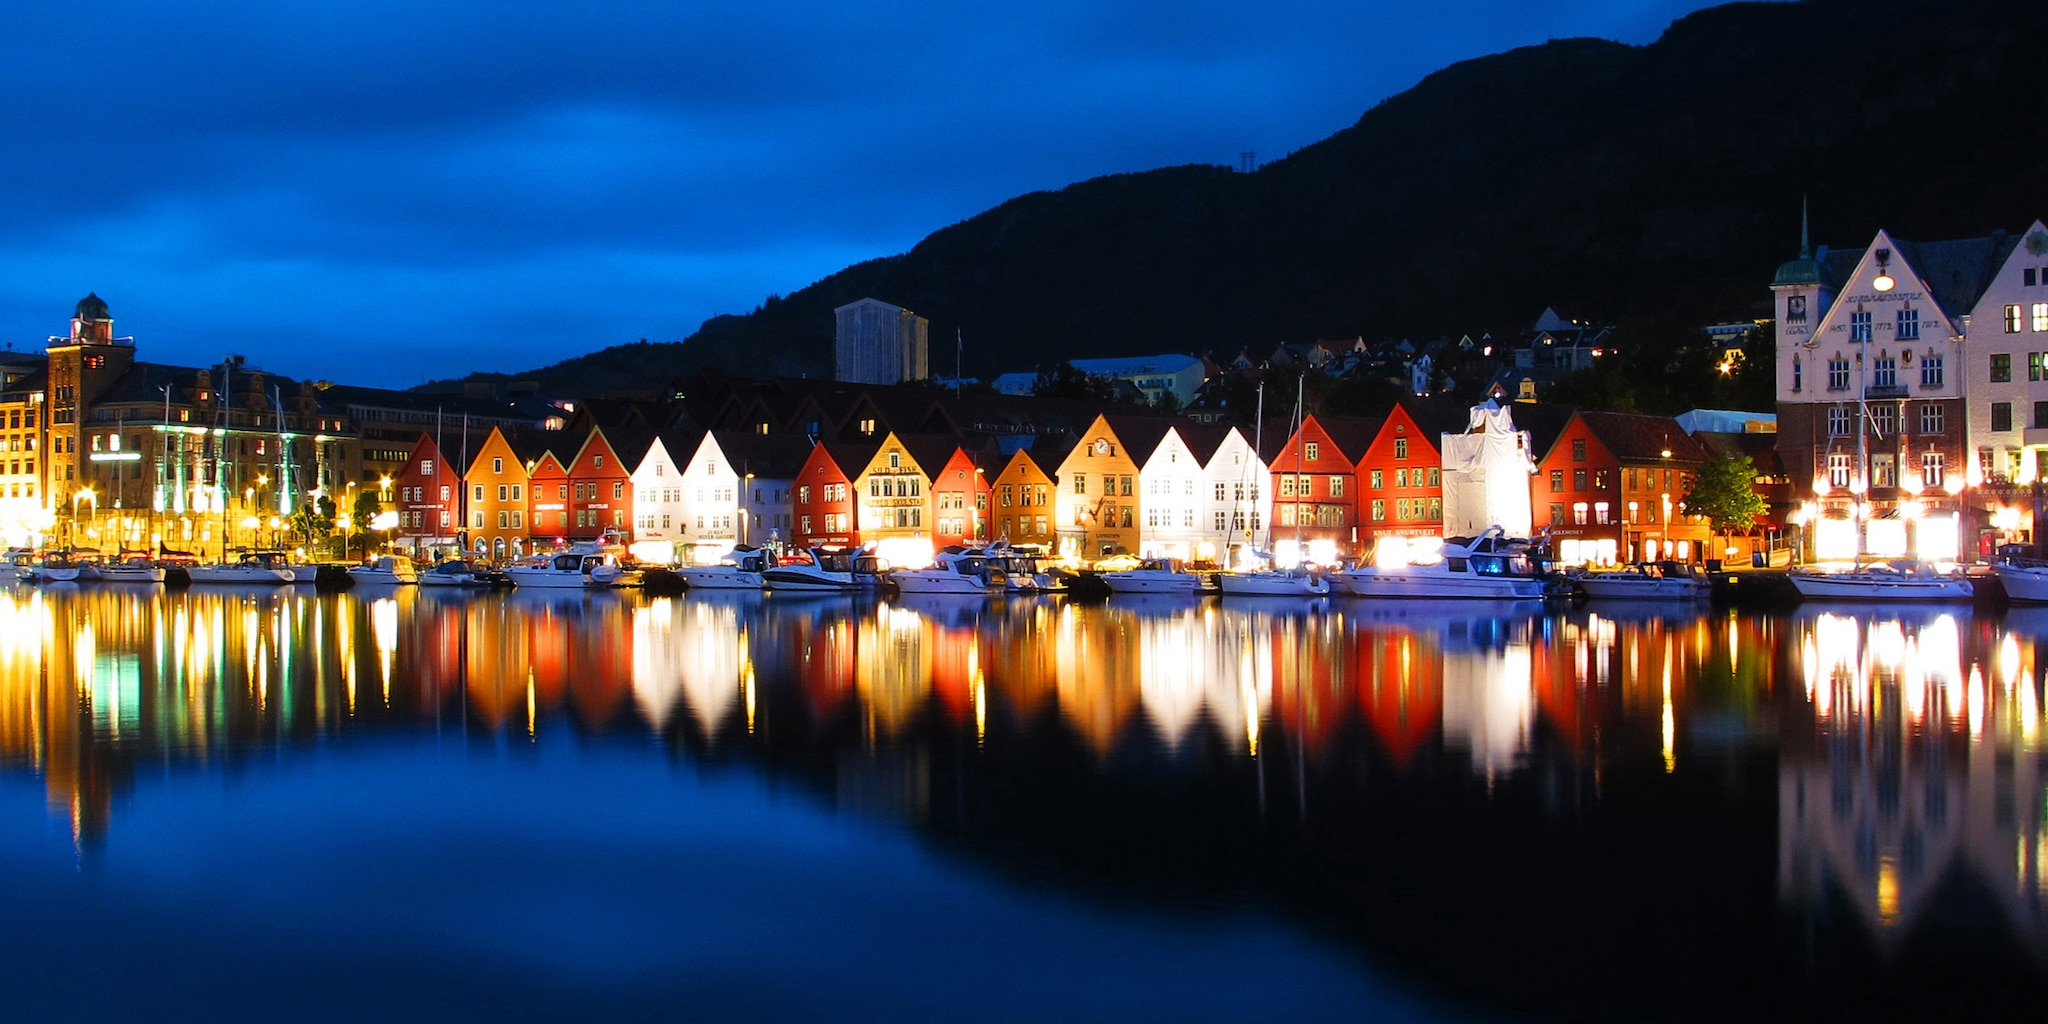 Lighted buildings alongside the water